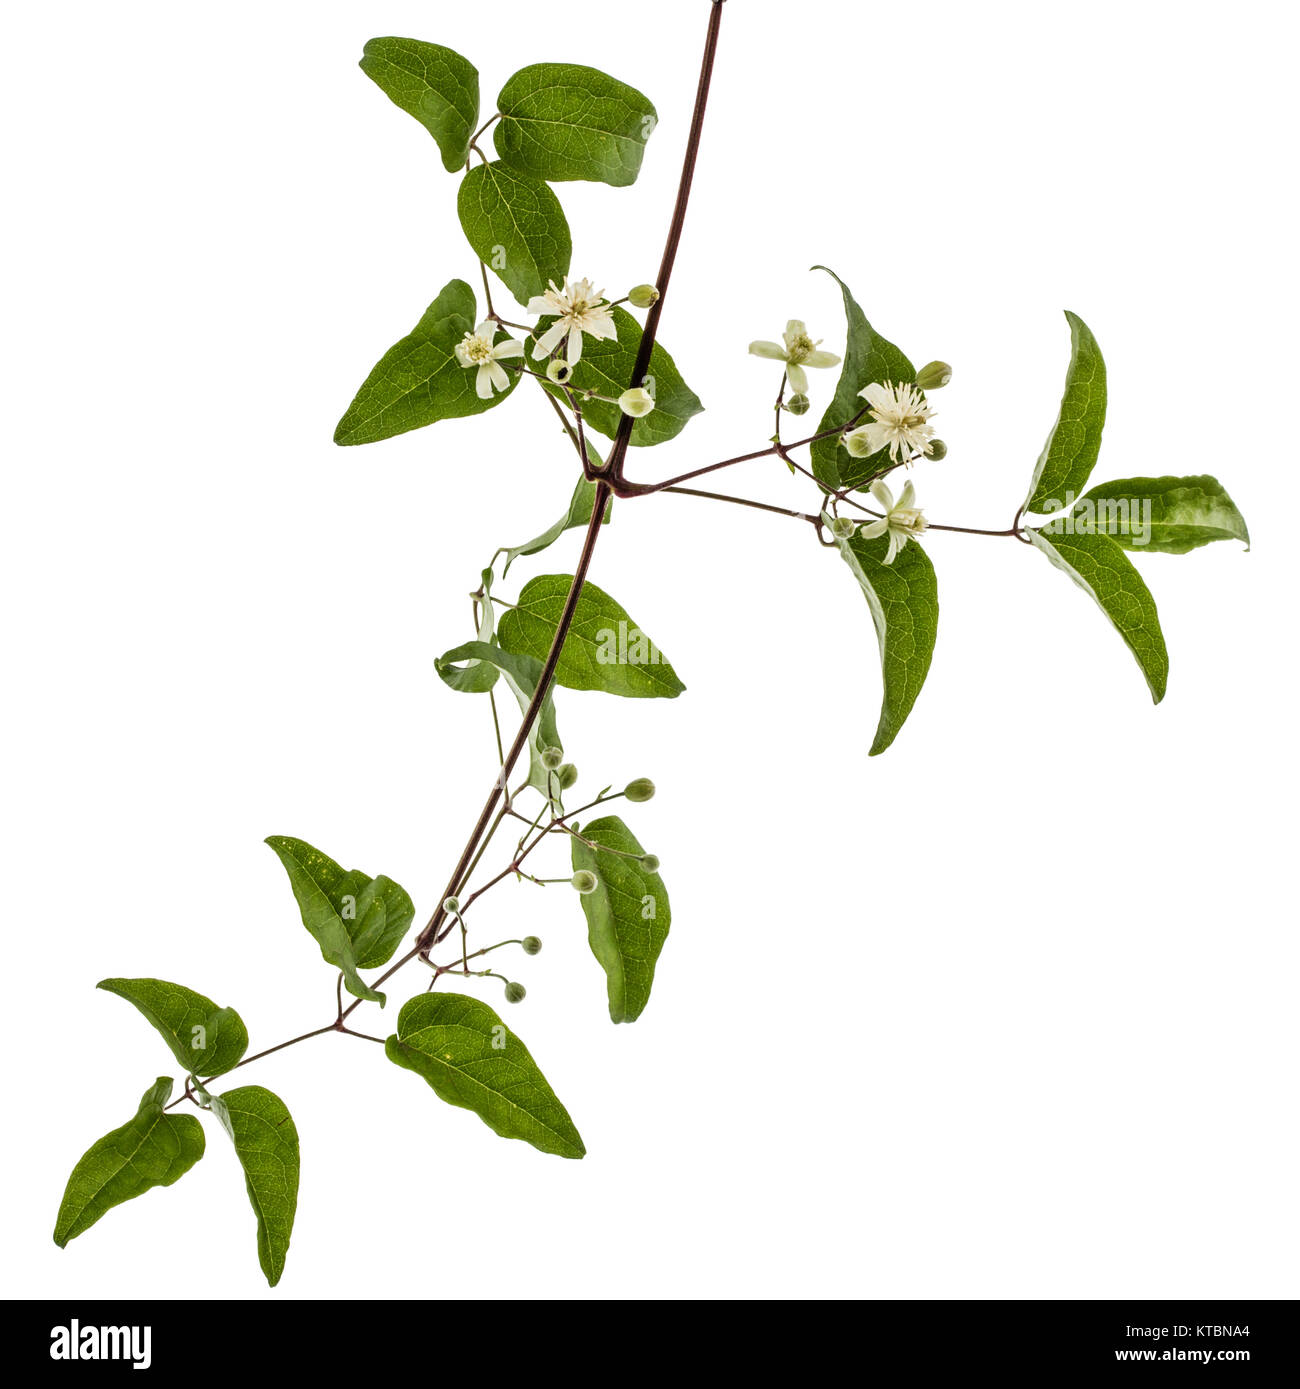 Flowers and leafs of Clematis , lat. Clematis vitalba L., isolated on white background - Stock Image